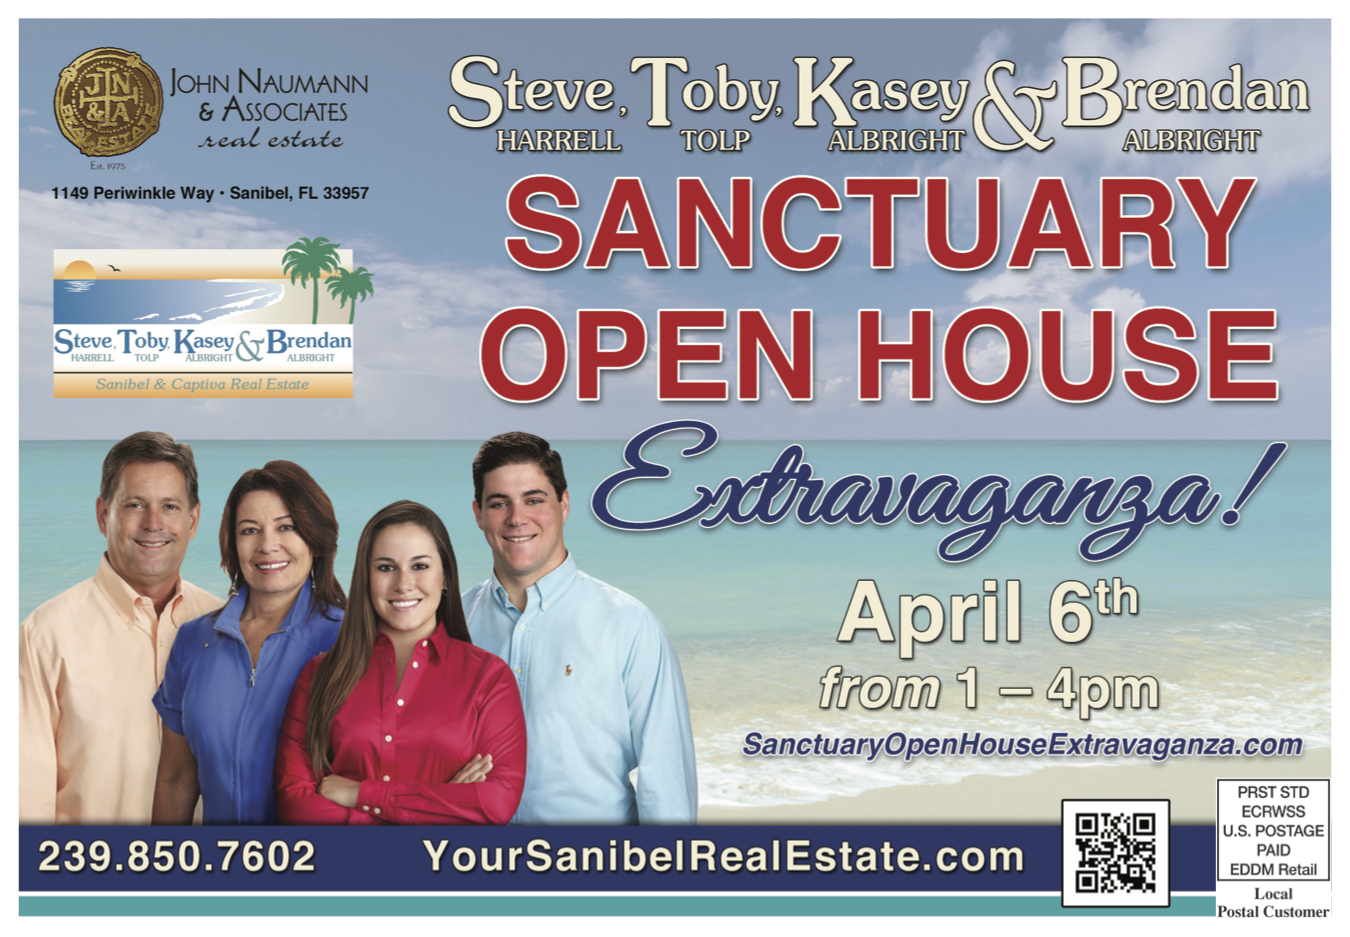 Sanctuary Open House Extravaganza